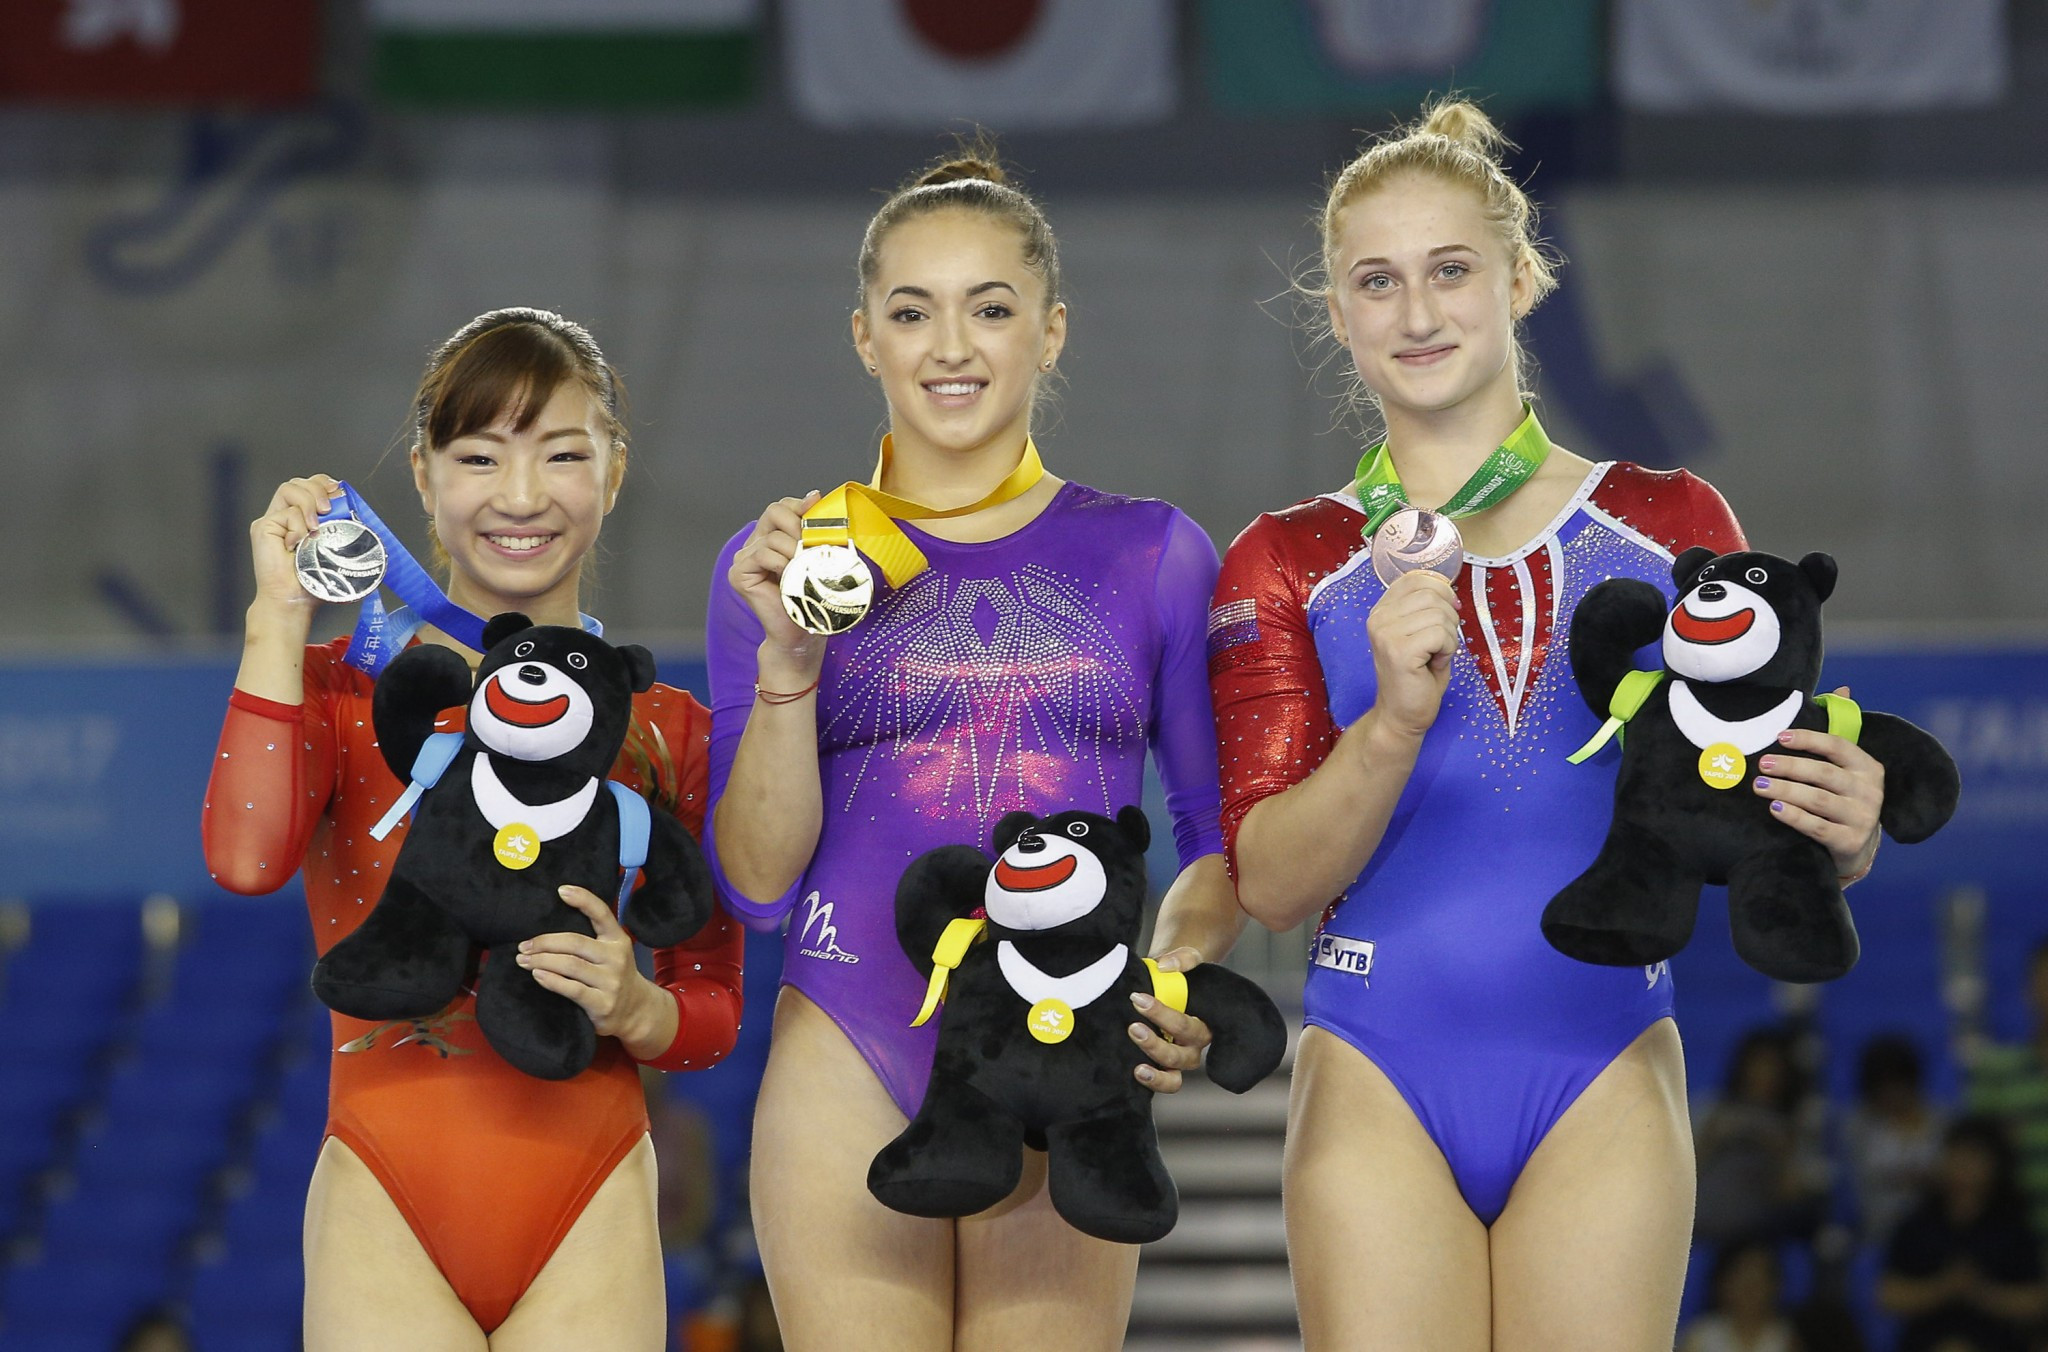 Andreea Reyes ten gymnasts claim gold medals as artistic competition